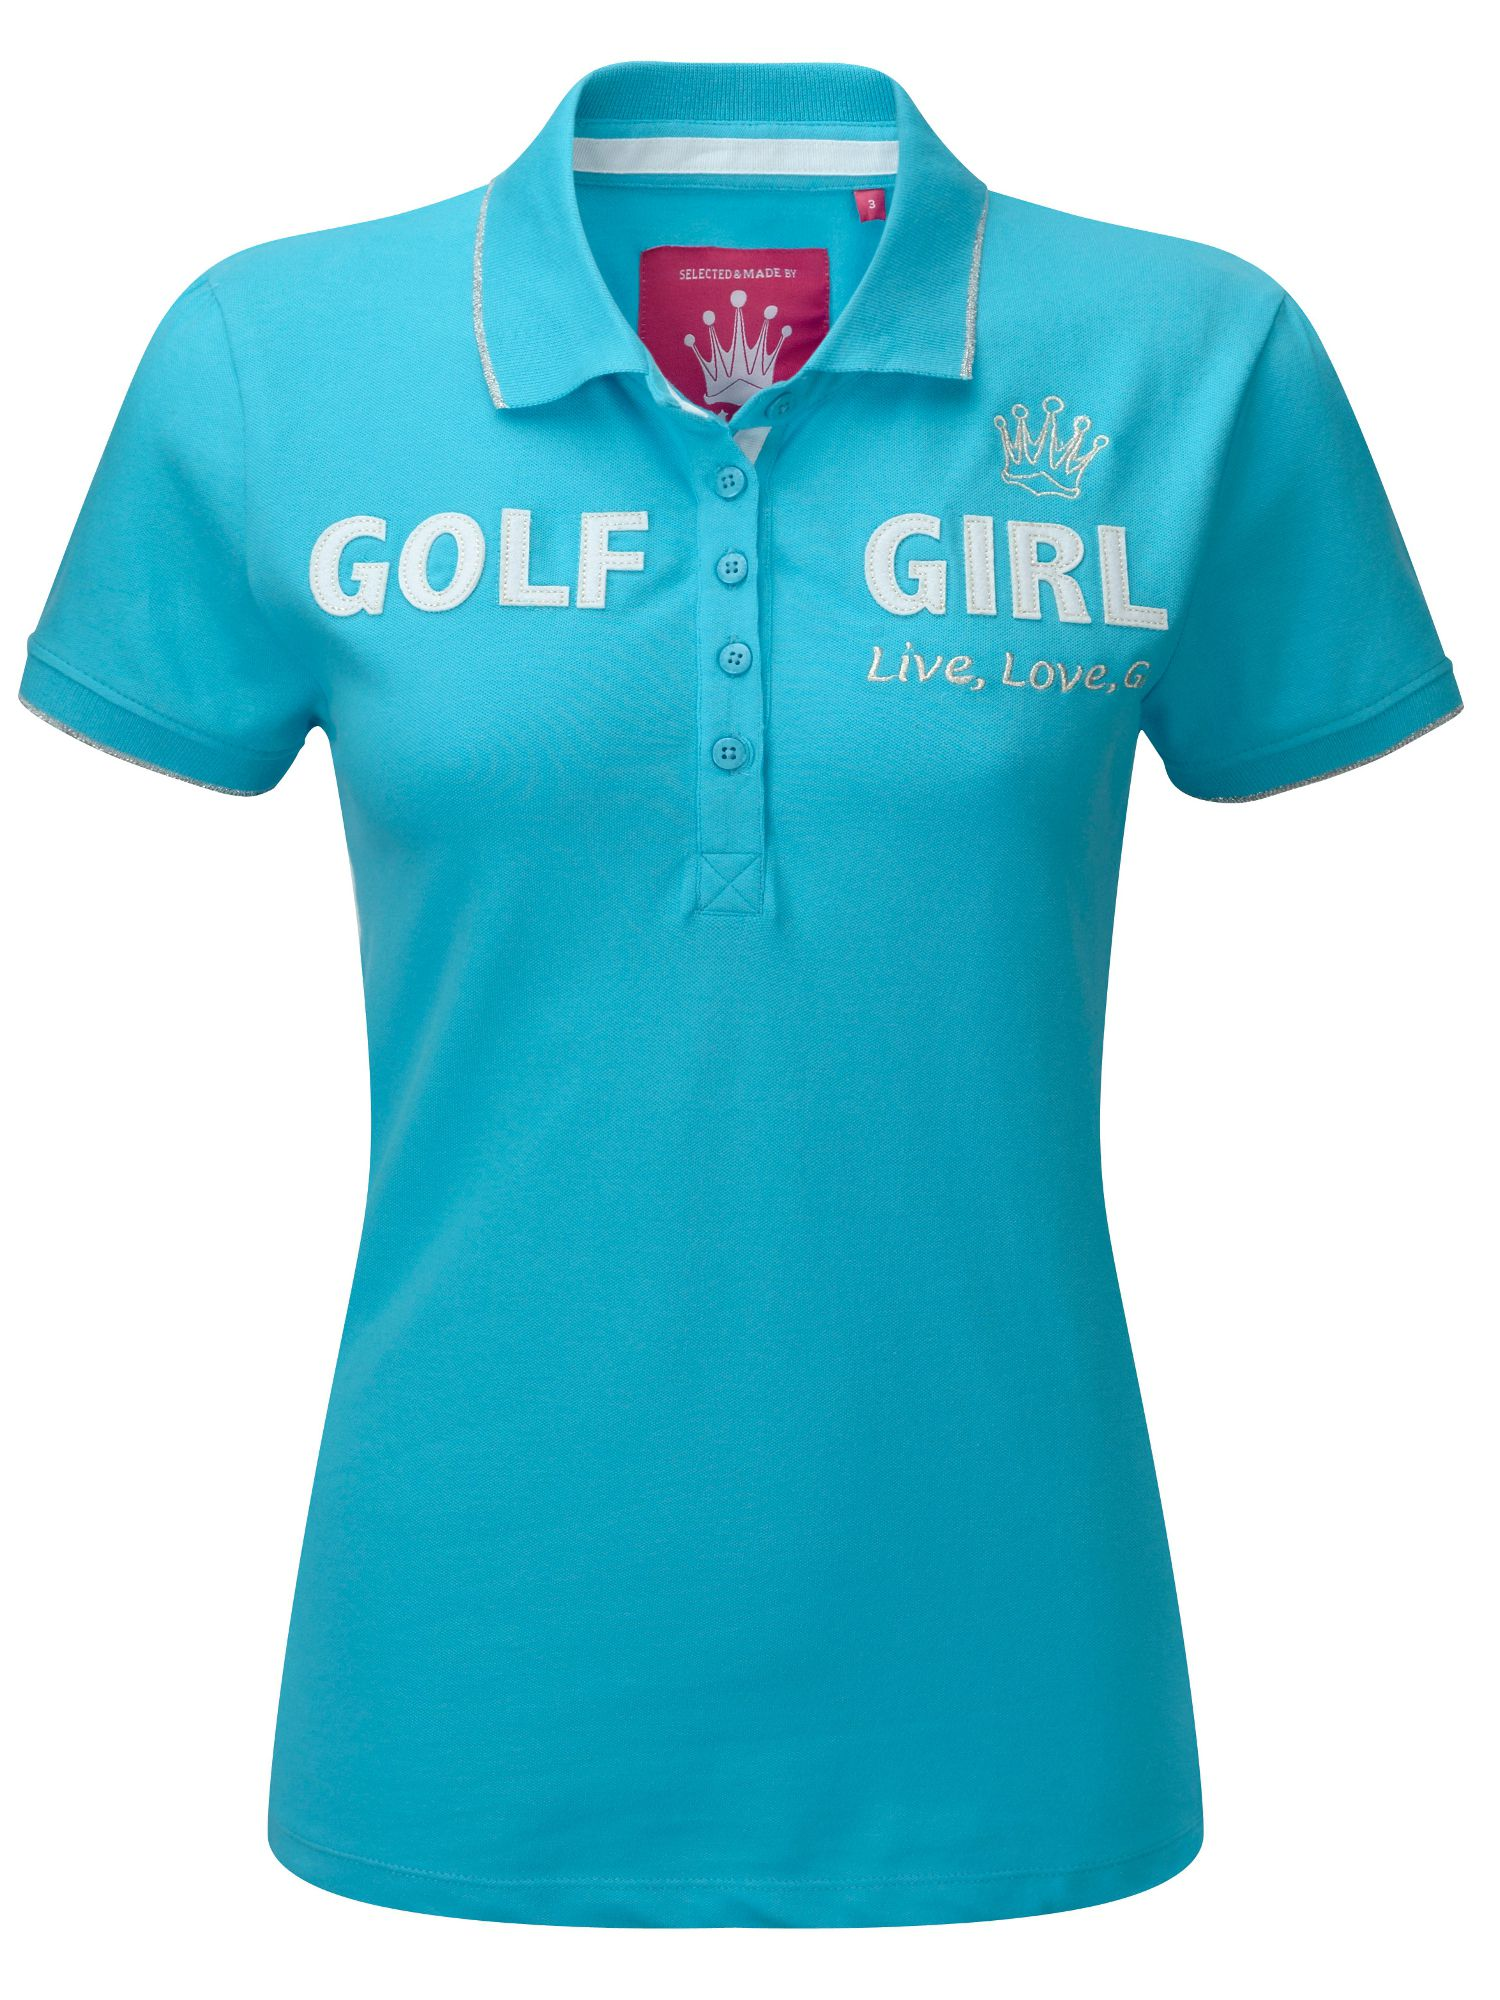 Golf girl clubhouse polo